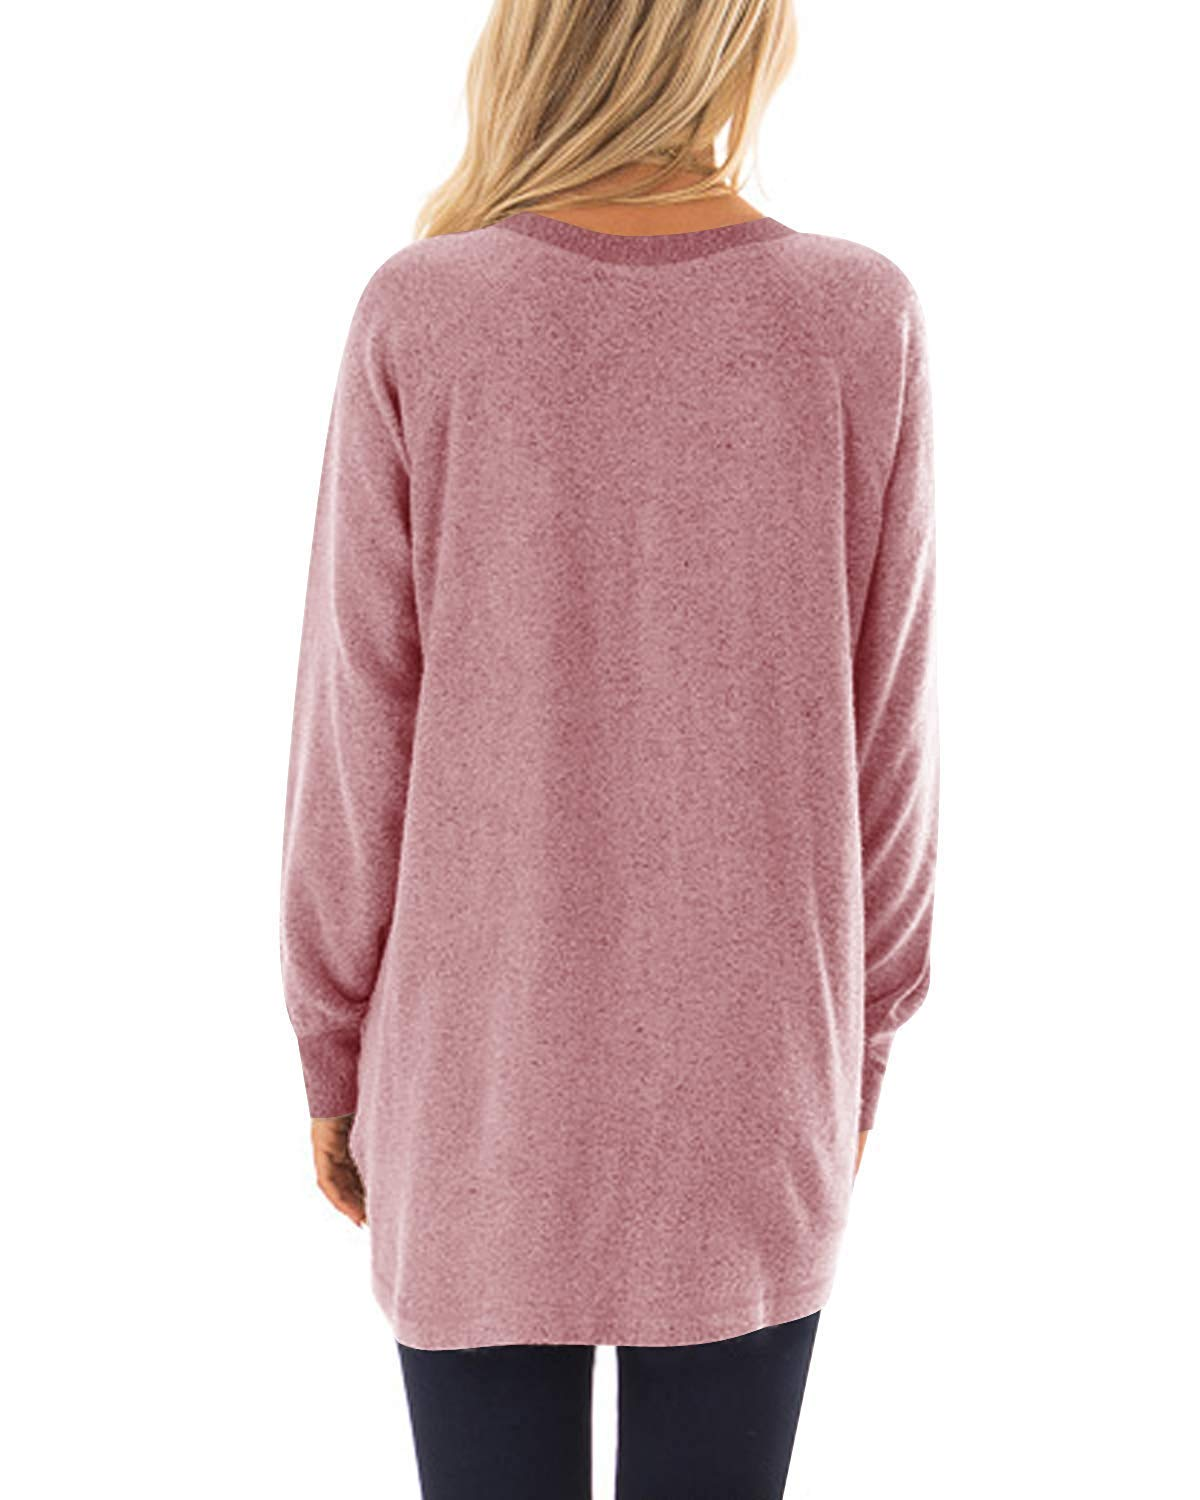 Womens Casual Long Sleeve Round Neck Pocket T Shirts Blouses Sweatshirts Tops Pink